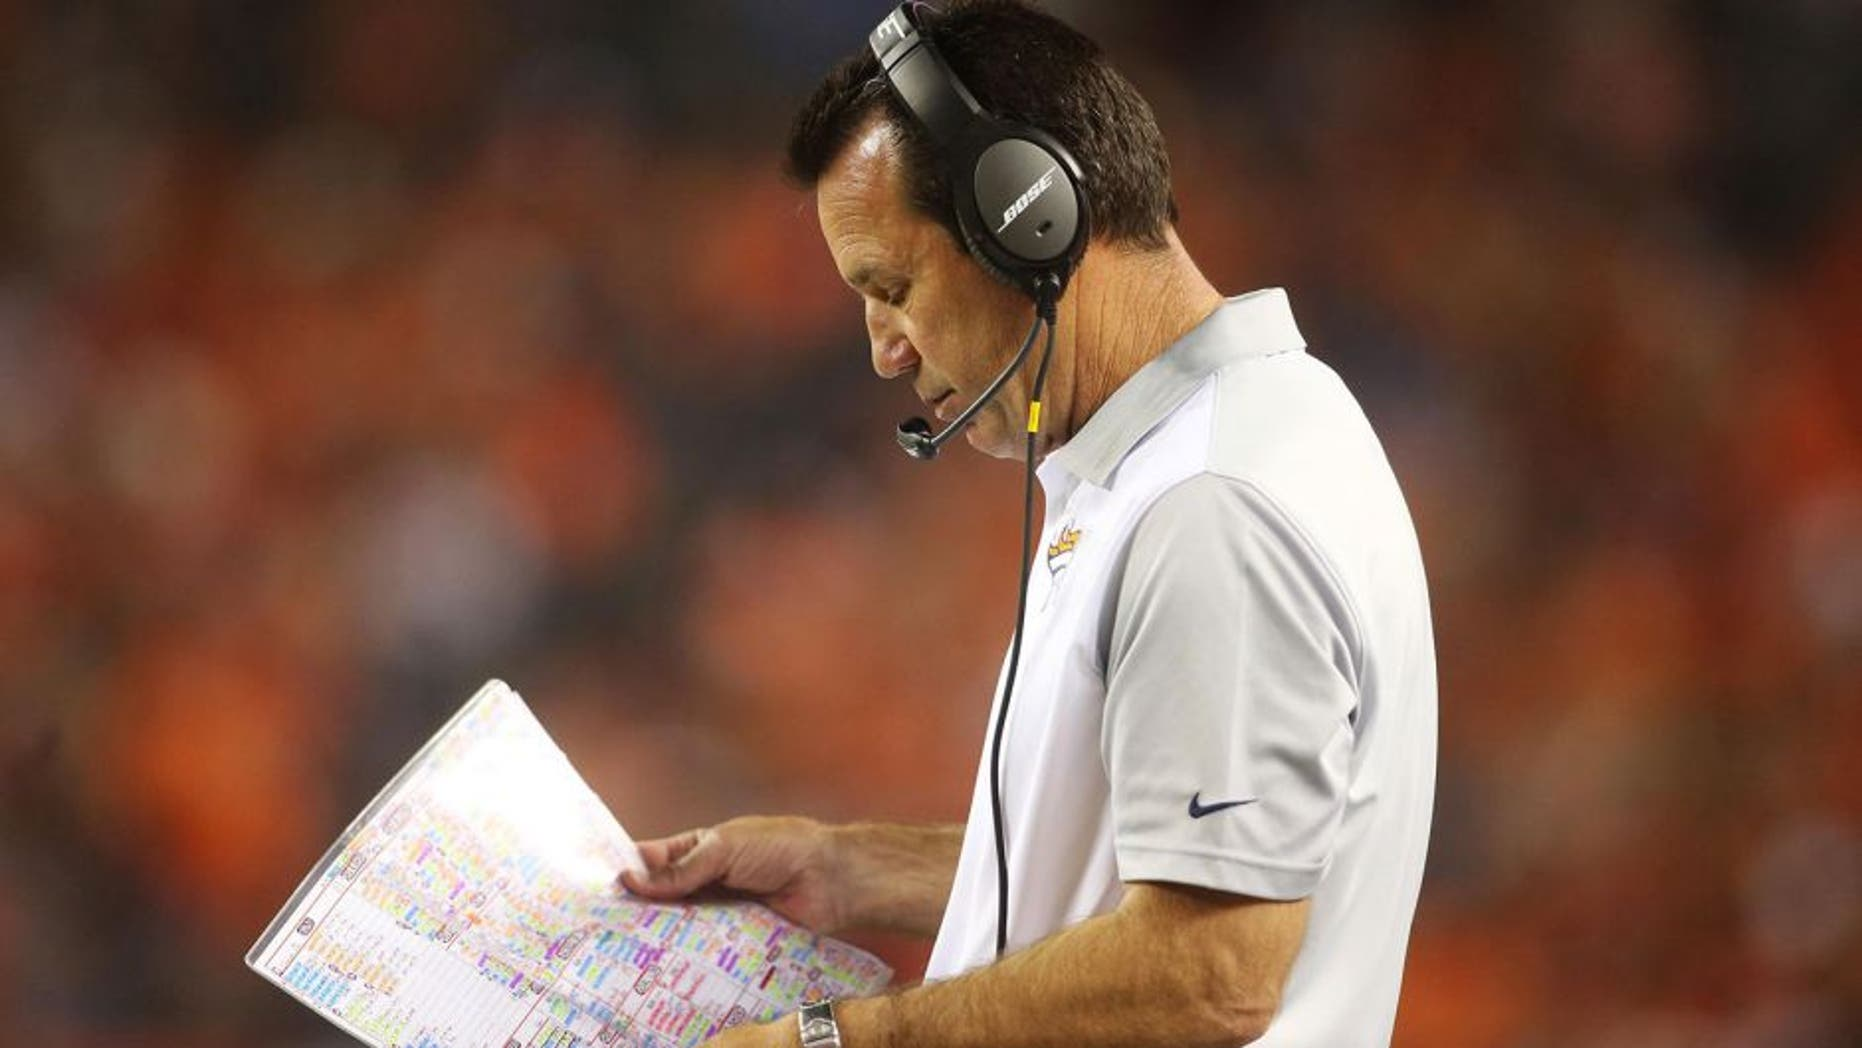 Aug 29, 2015; Denver, CO, USA; Denver Broncos head coach Gary Kubiak during the second half against the San Francisco 49ers at Sports Authority Field at Mile High. The Broncos won 19-12. Mandatory Credit: Chris Humphreys-USA TODAY Sports